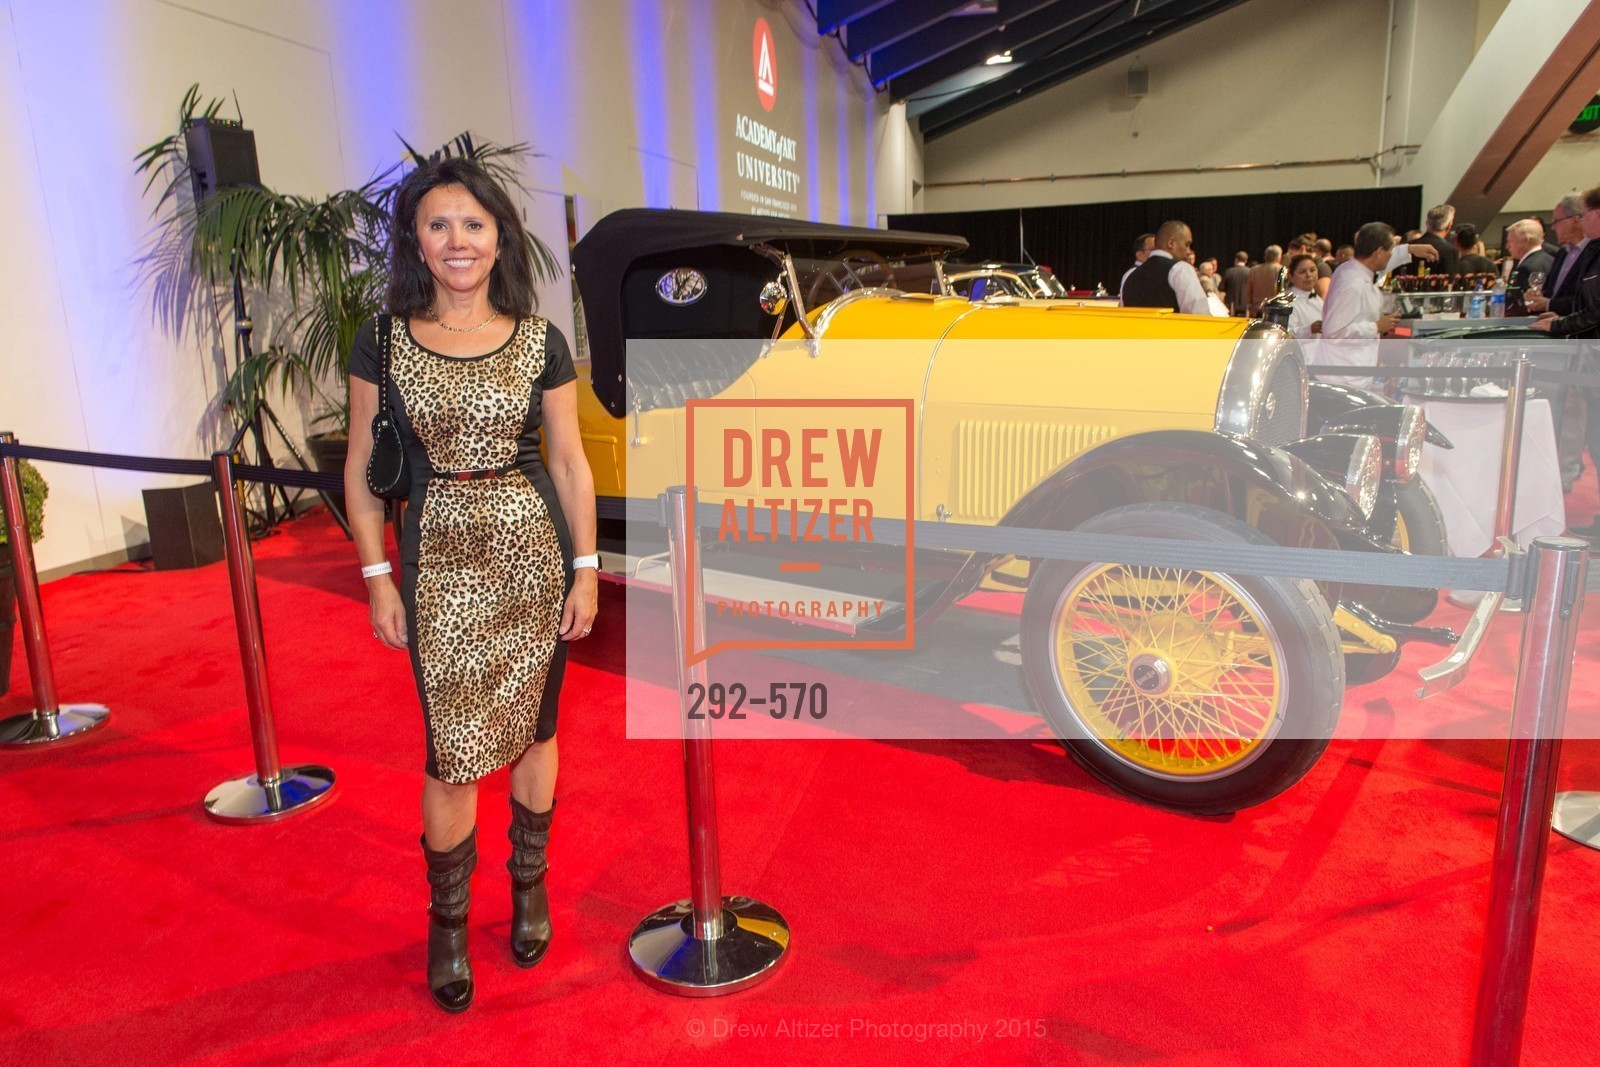 Extras, Academy of Art University Reception at the 58th Annual SF International Auto Show, November 20th, 2015, Photo,Drew Altizer, Drew Altizer Photography, full-service agency, private events, San Francisco photographer, photographer california